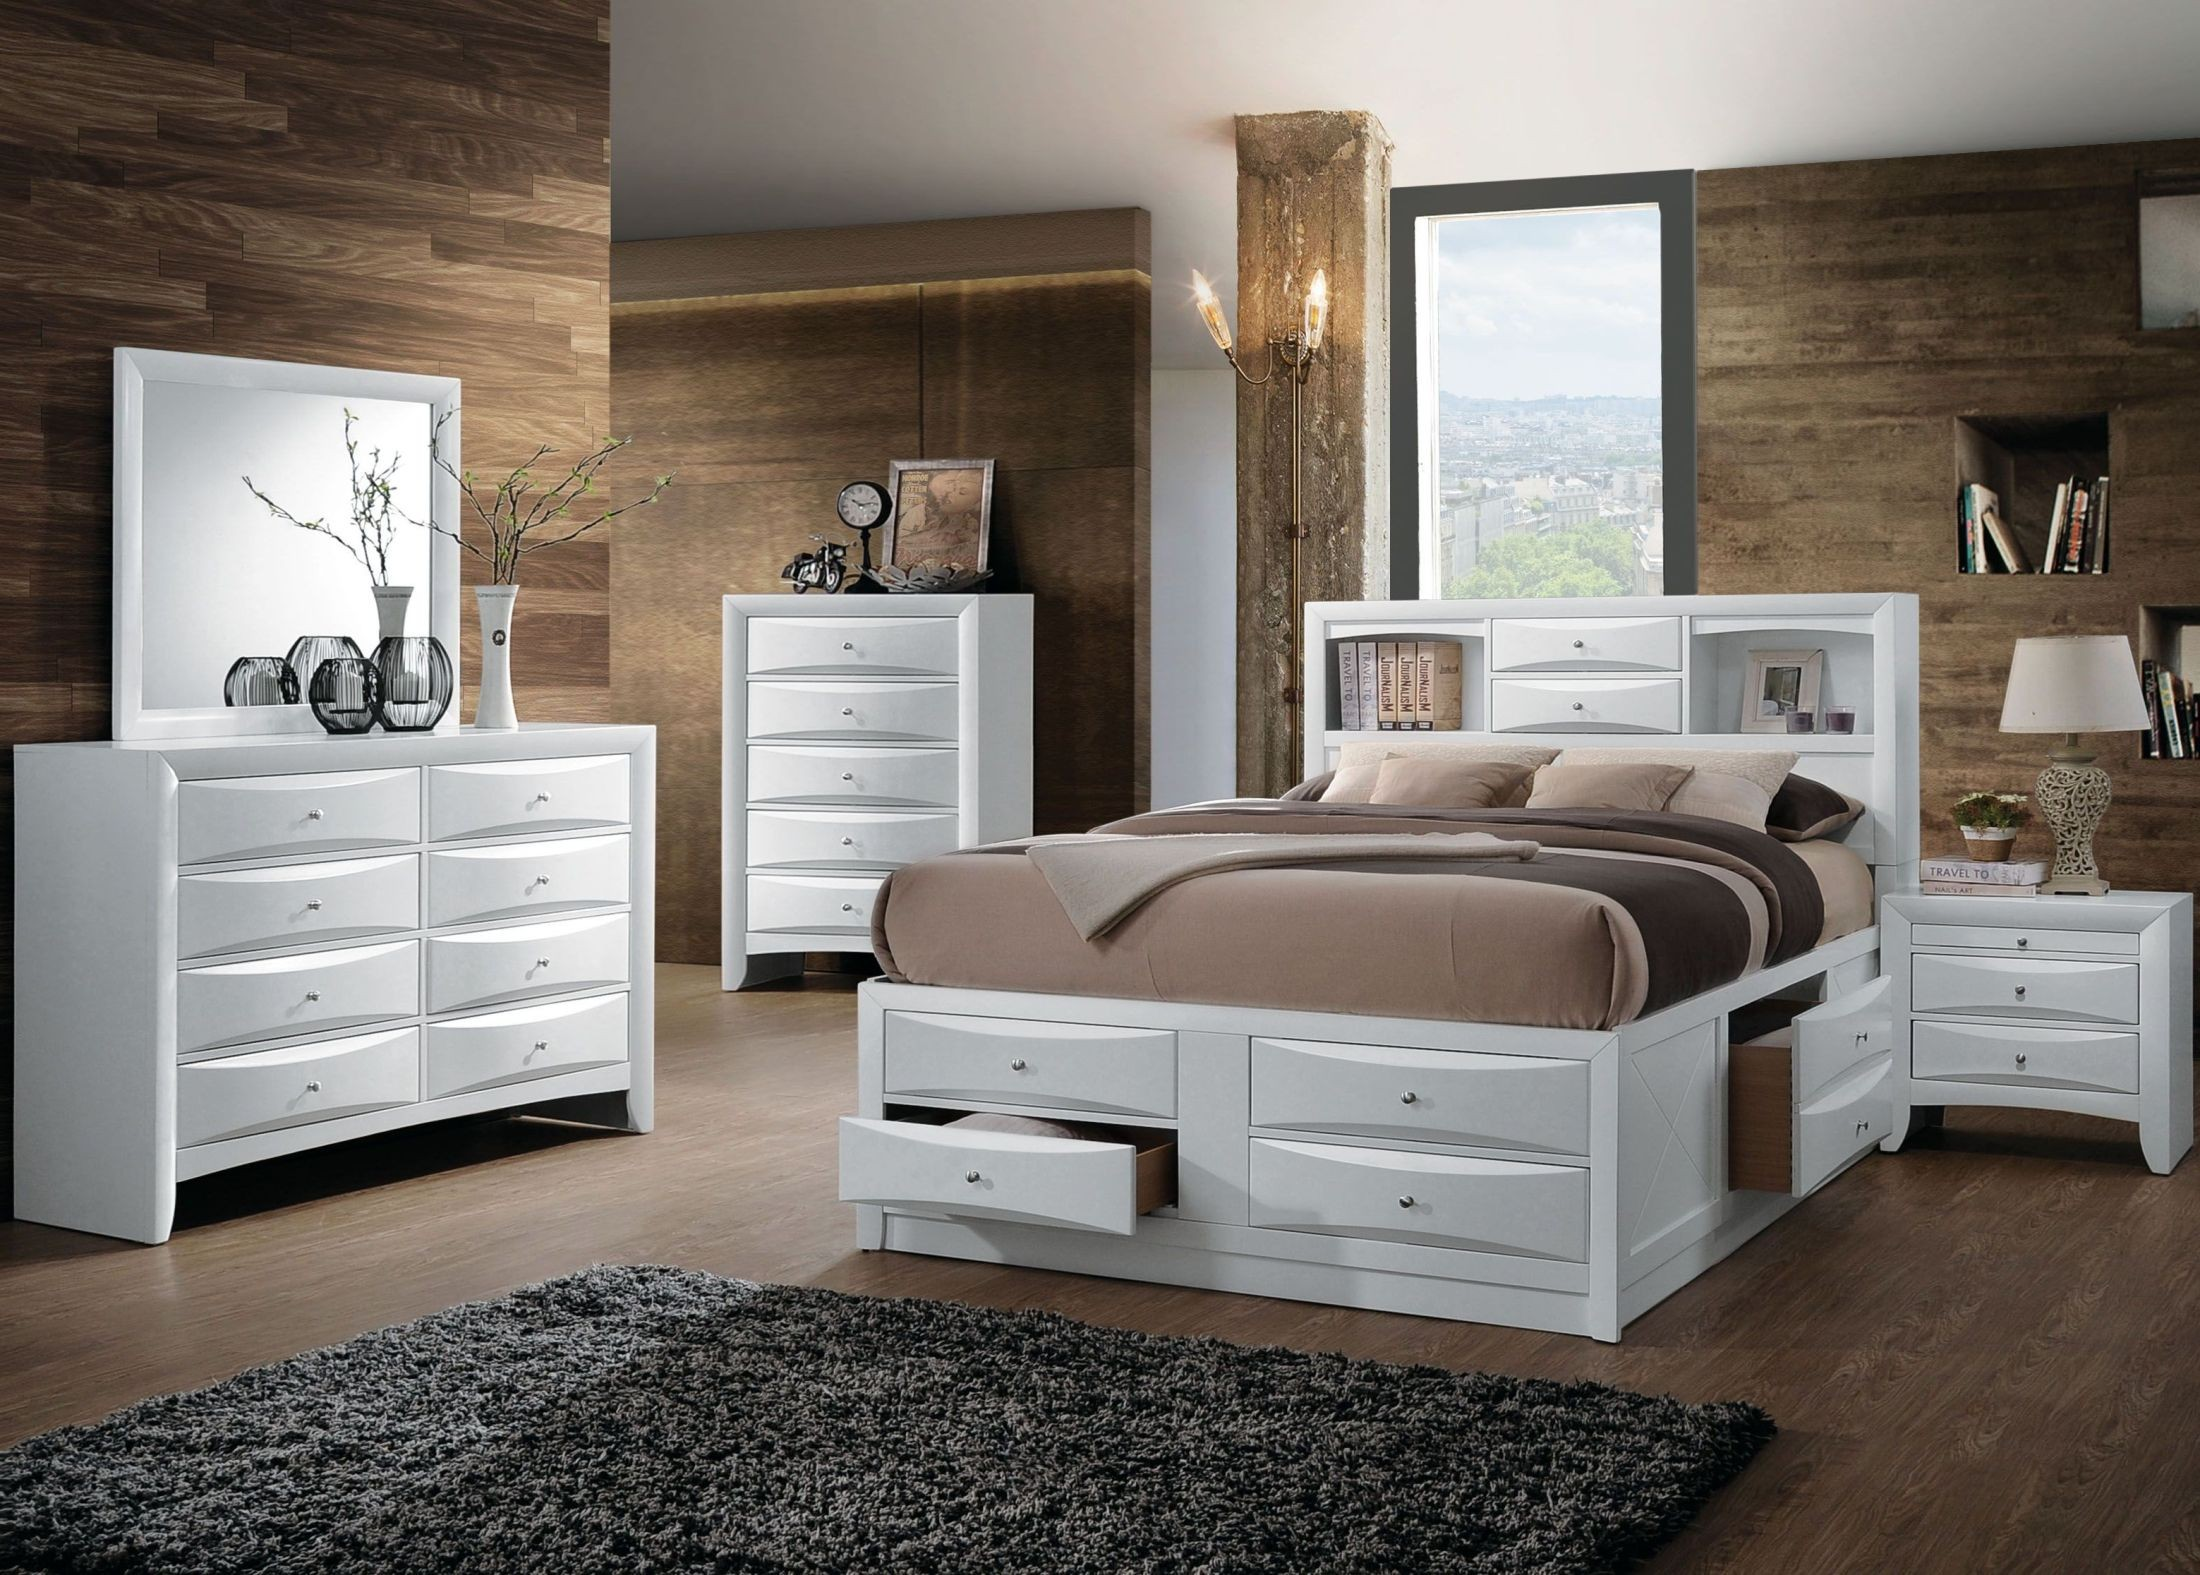 Acme ireland white youth bookcase storage bedroom set - Youth bedroom furniture with storage ...